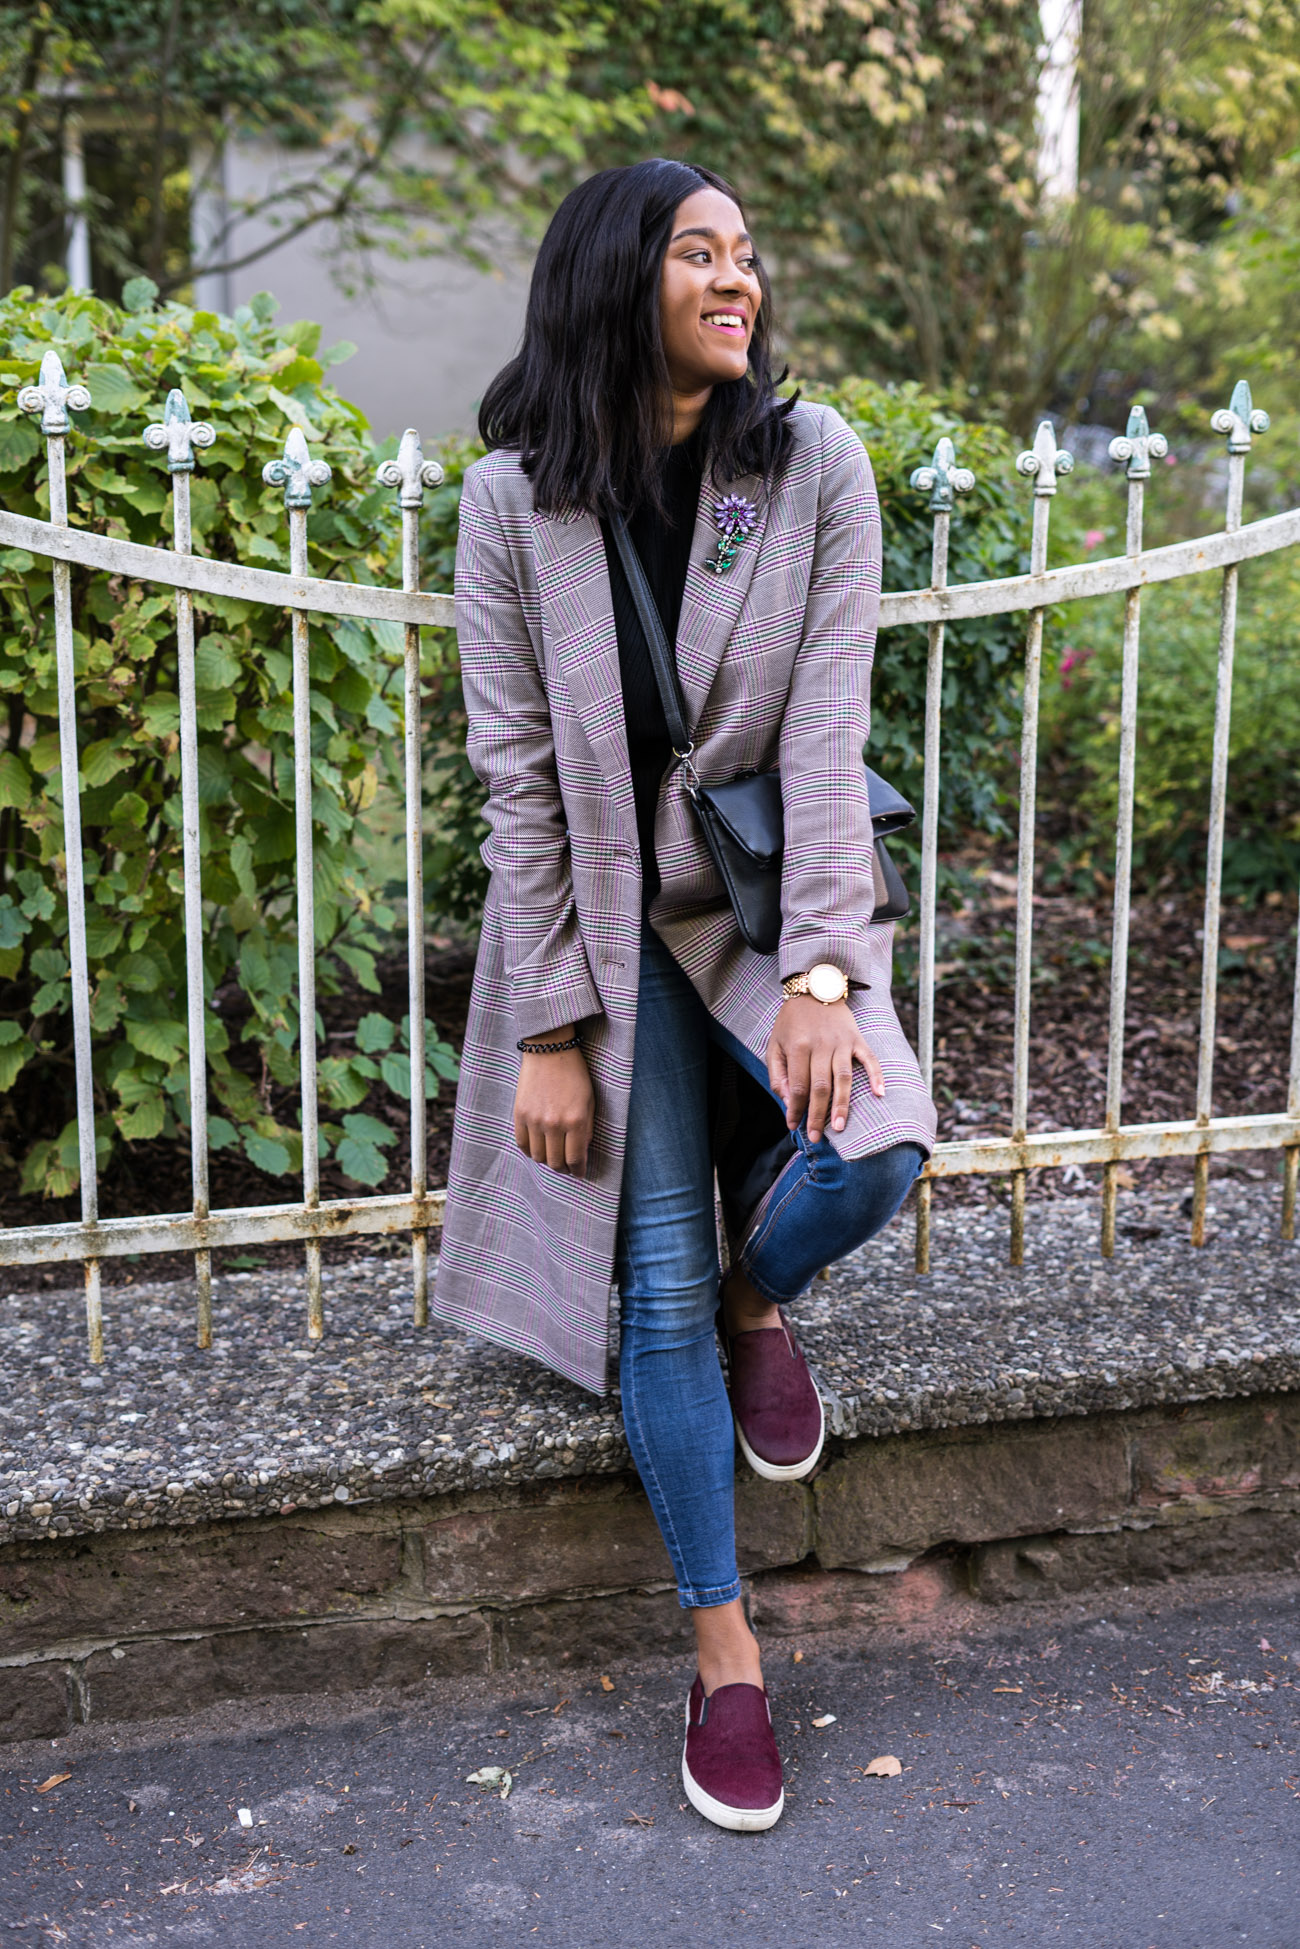 Checked Coat Casual Fall Street Style Jeans Fall Outfit Fall Style Autumn Look